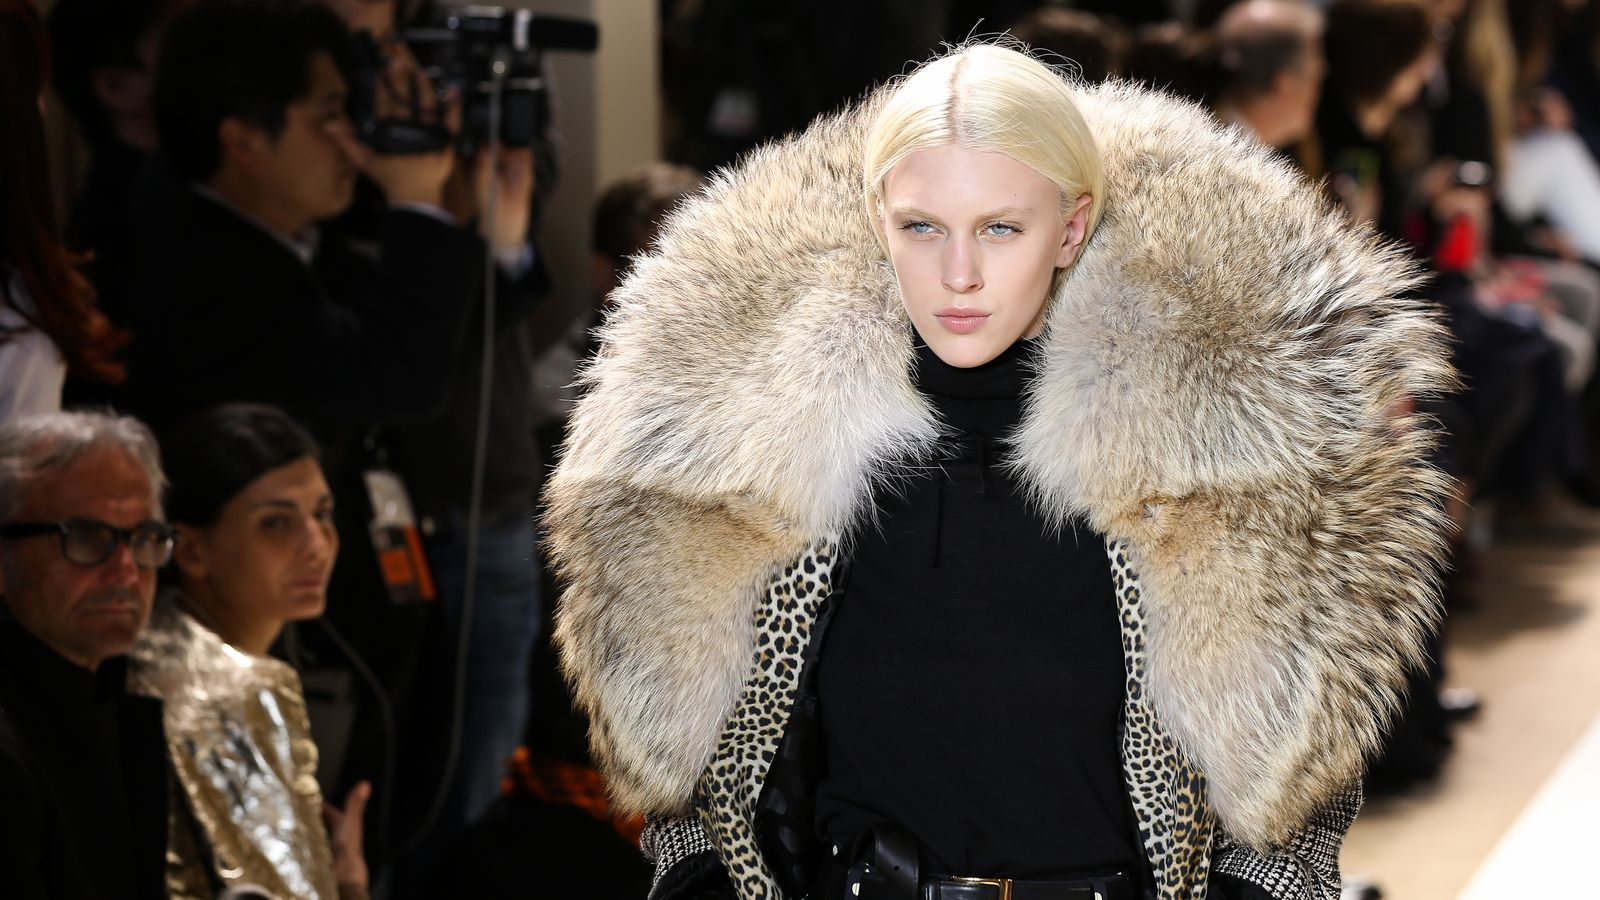 It S 2015 Fashion Is Full Of Vegans So Why Is Fur Still